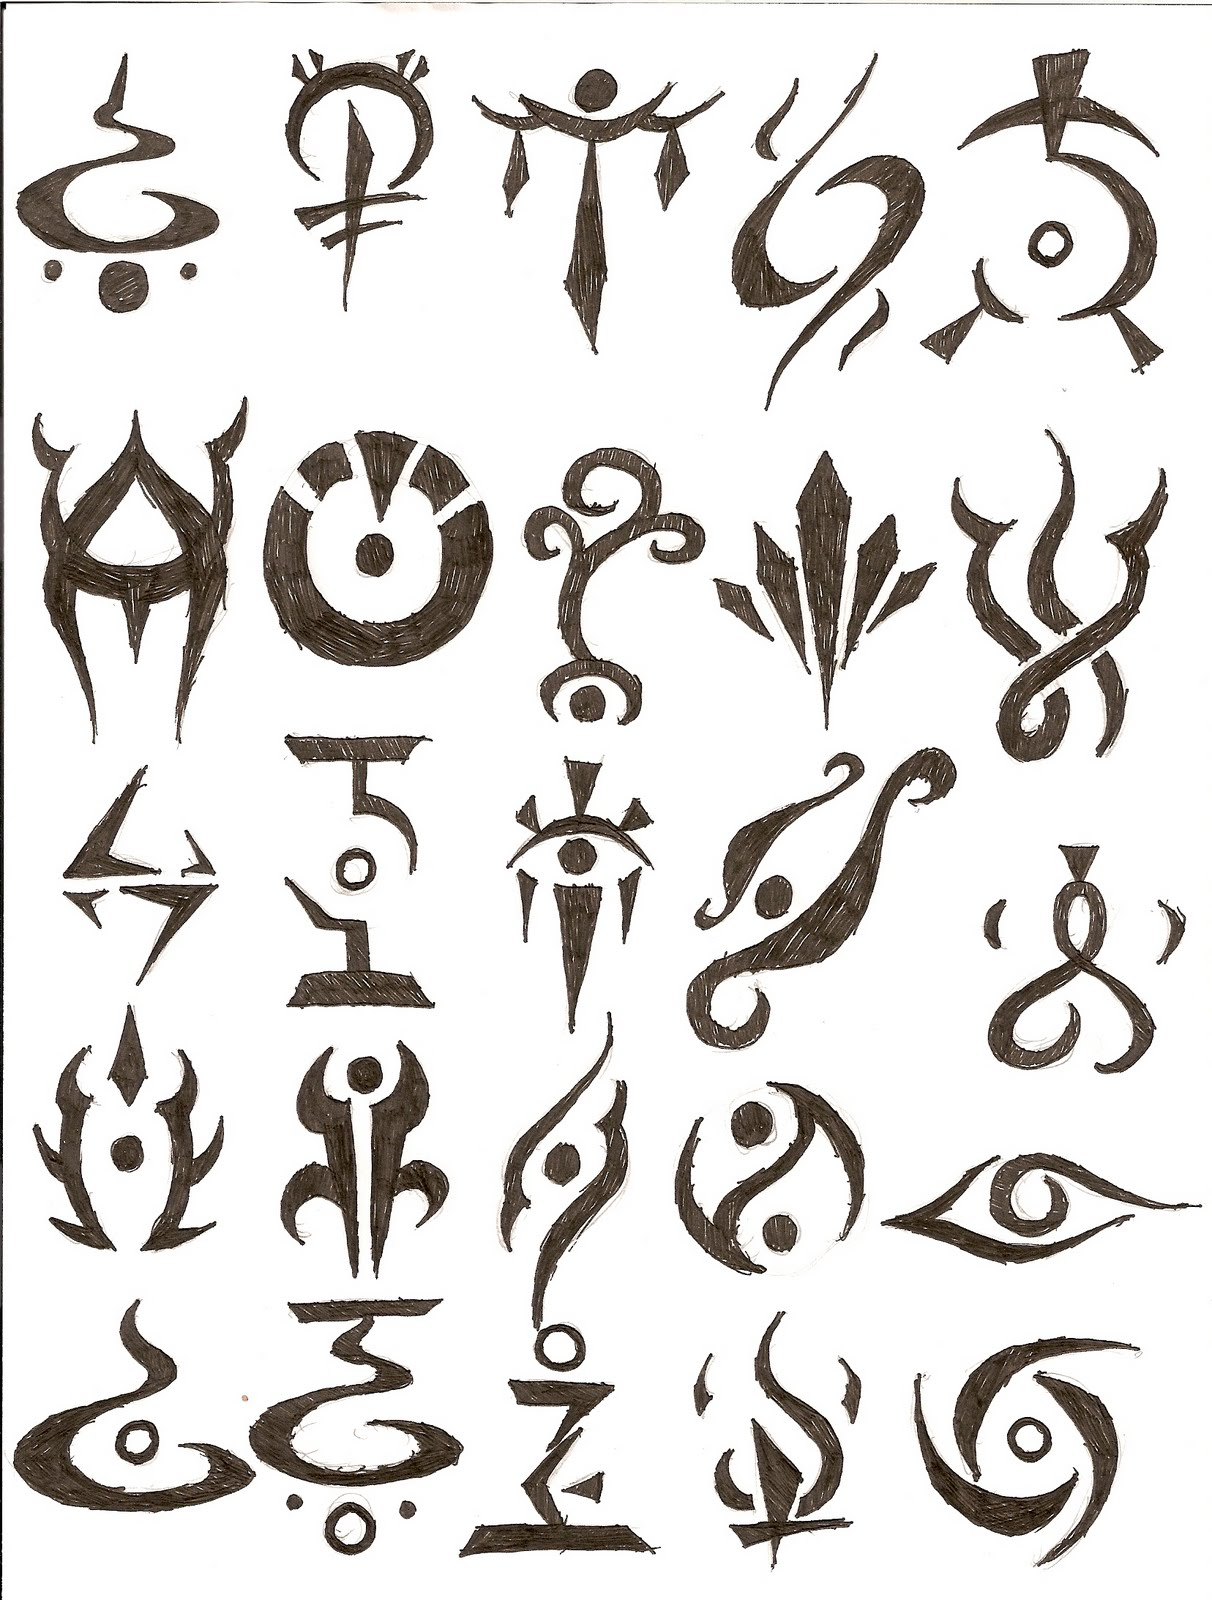 Best tattoos for men symbols for tattoos symbols for tattoos biocorpaavc